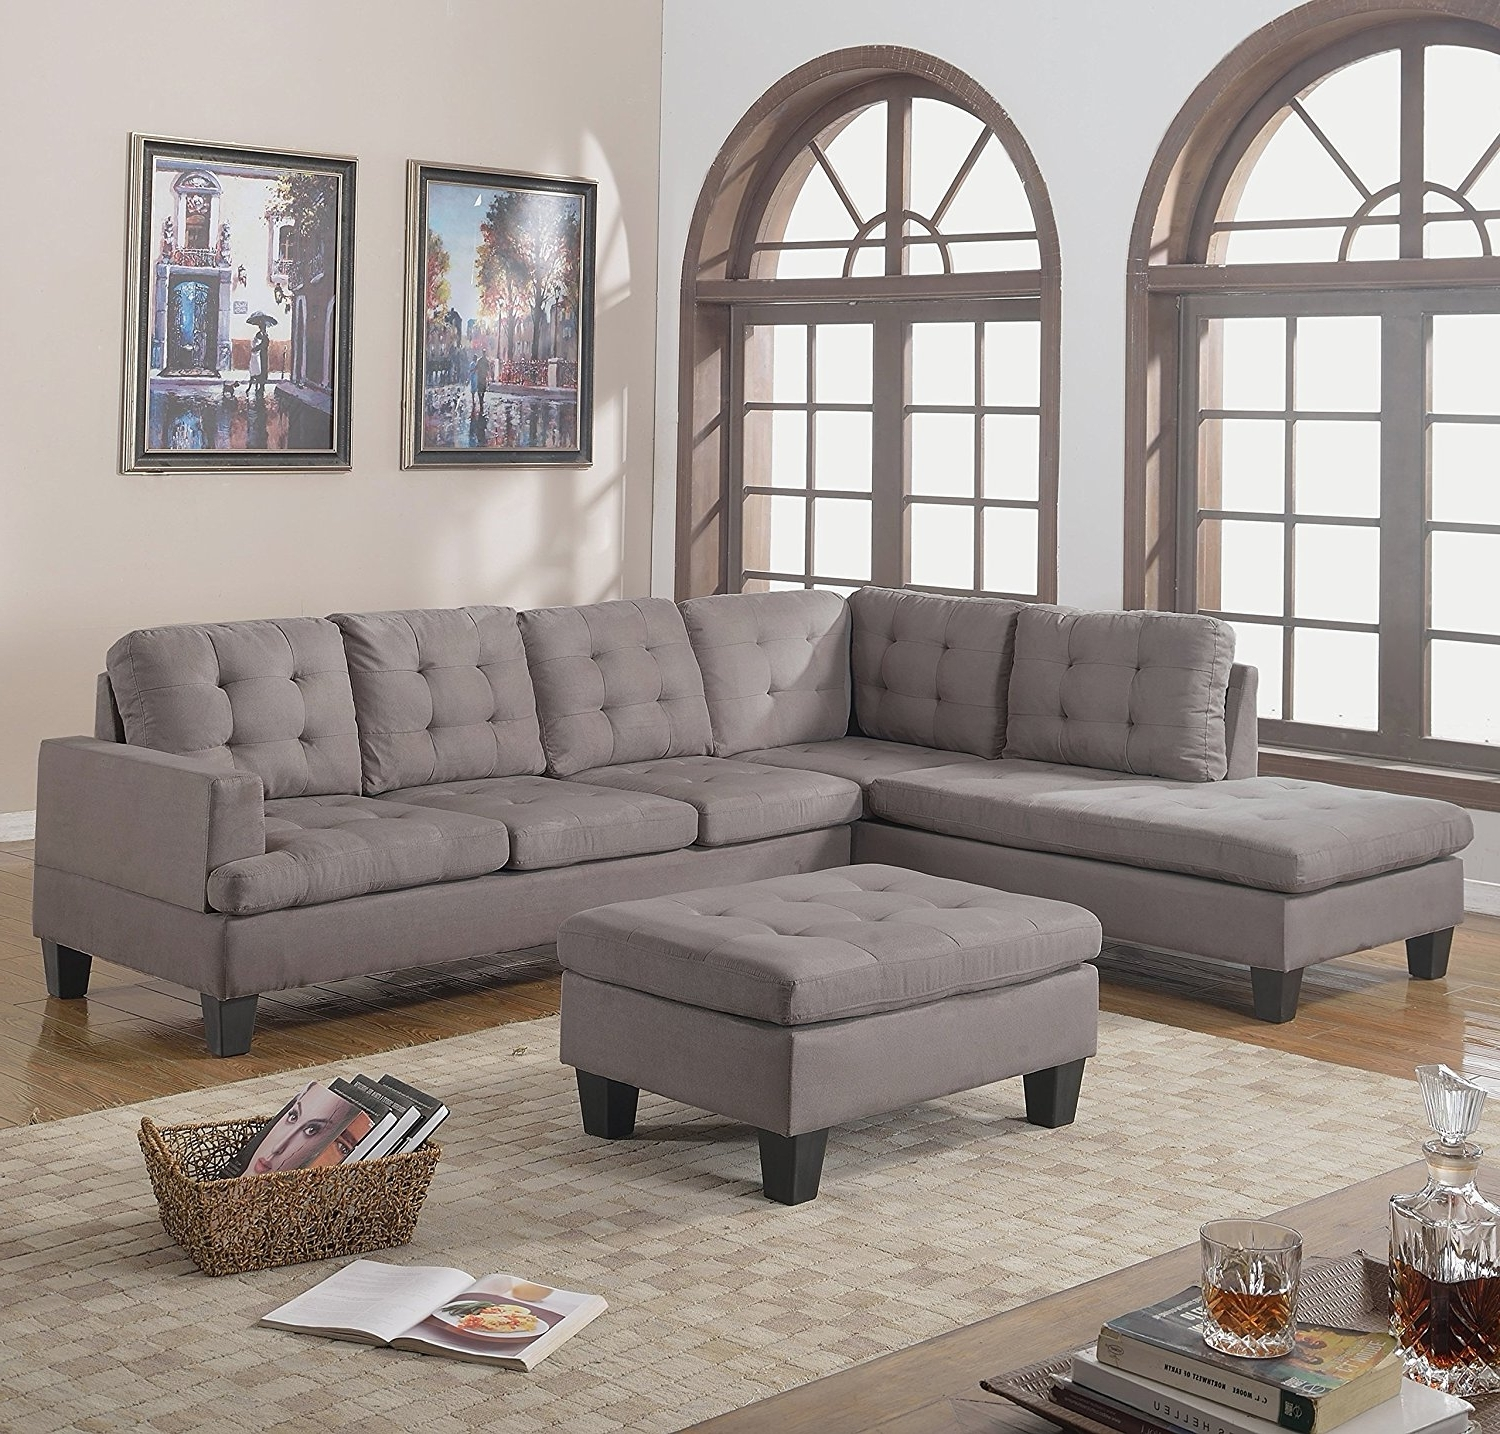 Kansas City Mo Sectional Sofas Pertaining To Widely Used Furniture : American Furniture Warehouse 470 Living Room Furniture (Gallery 5 of 15)